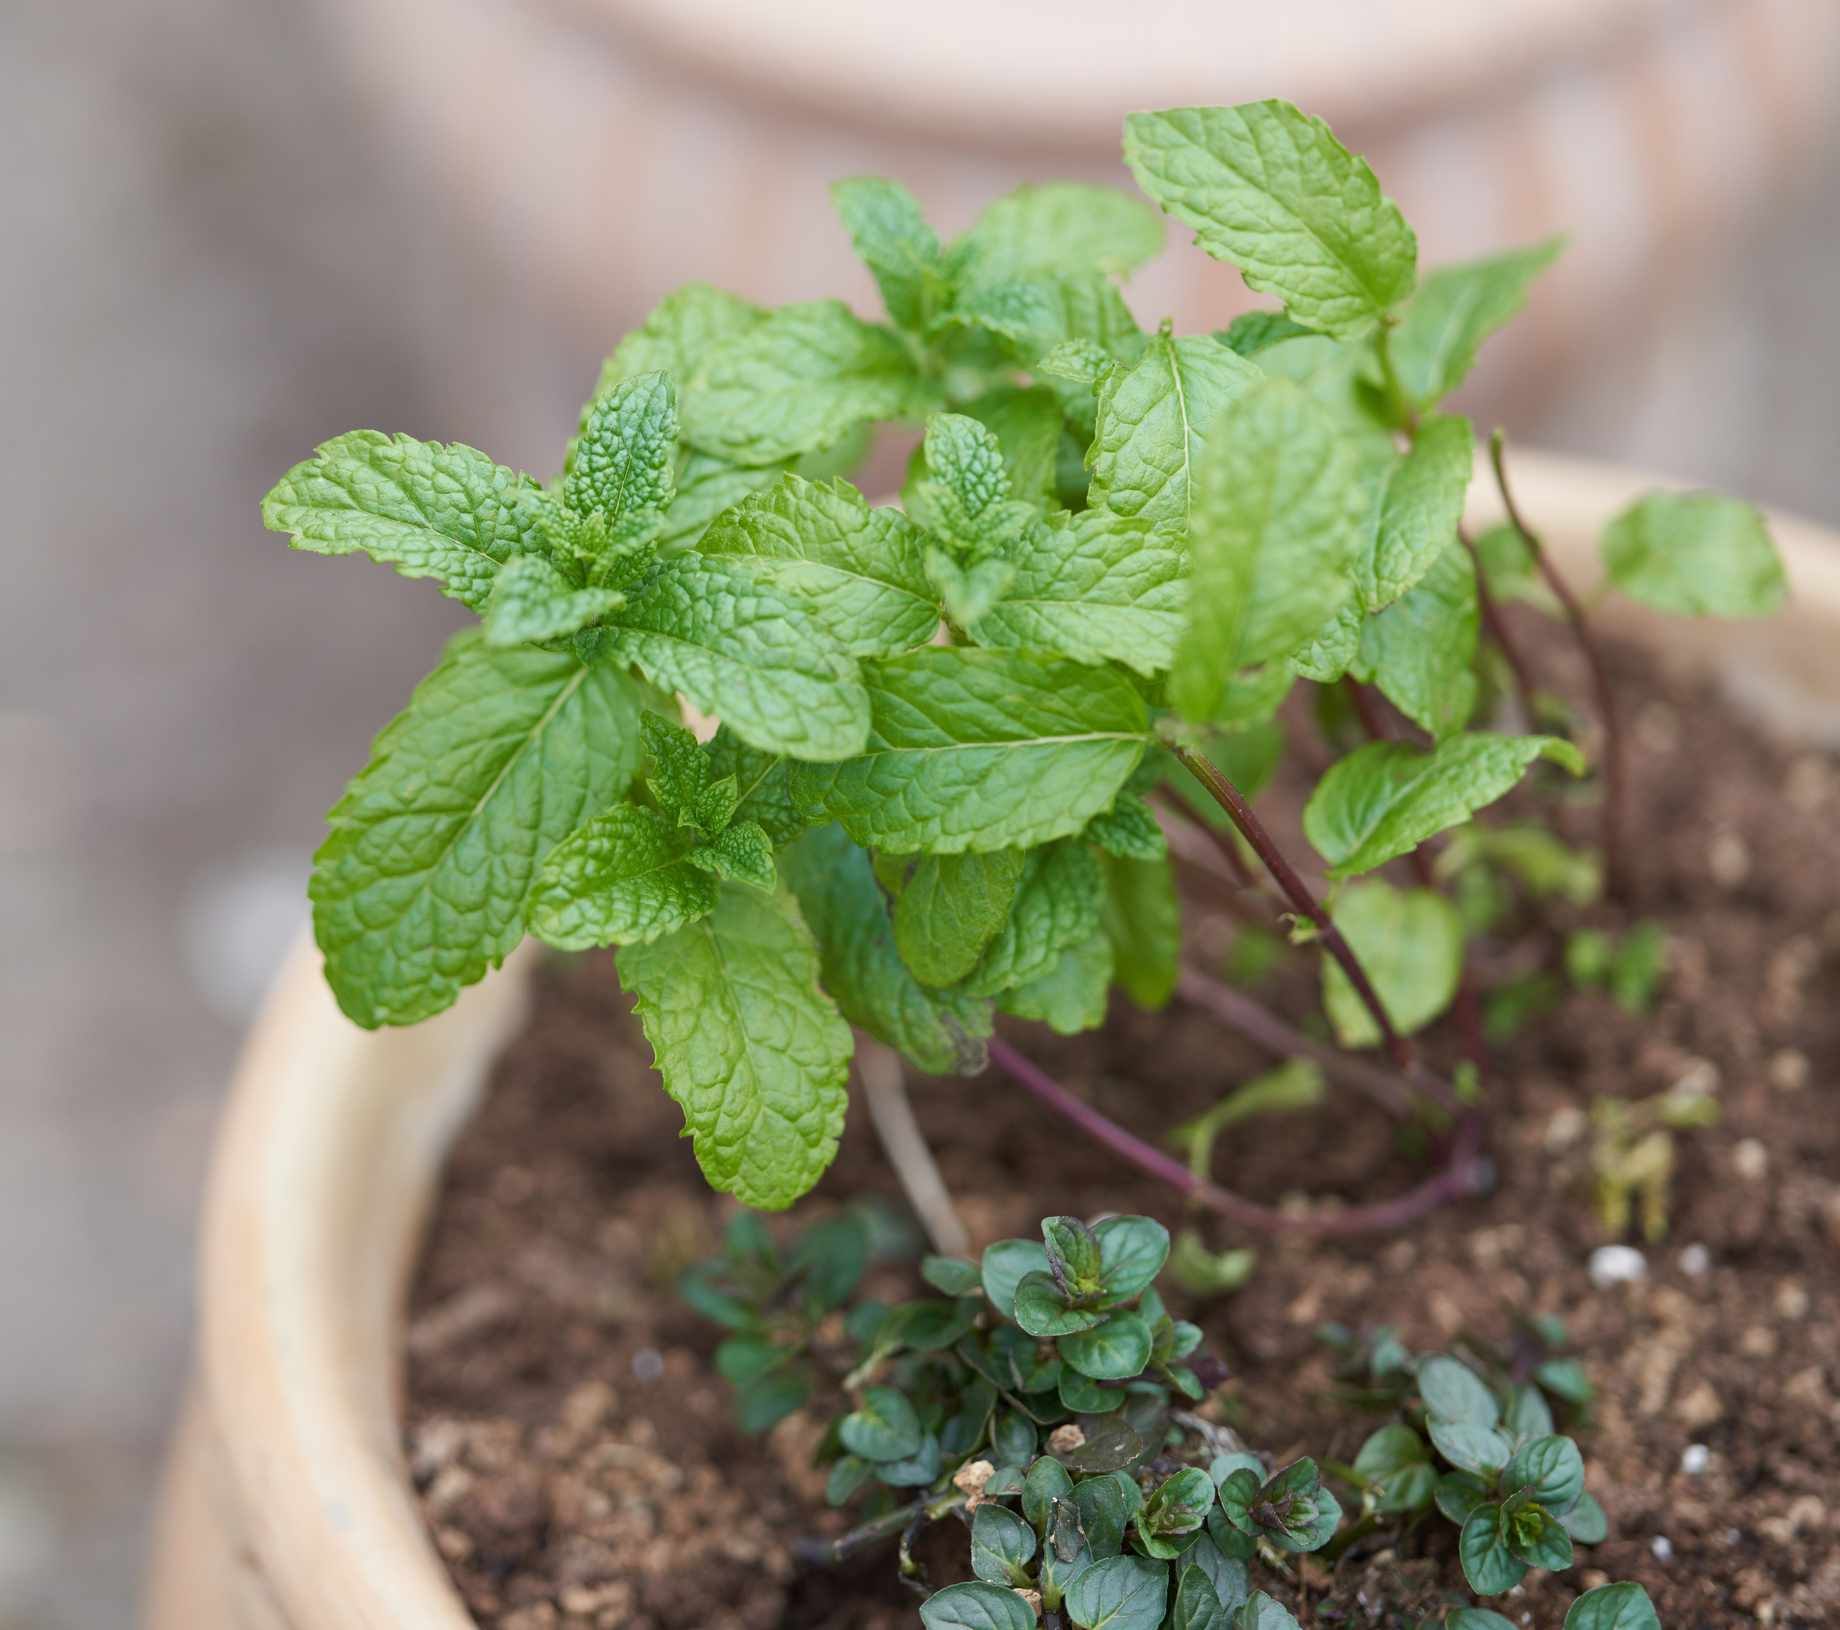 Chocolate mint plant growing in a pot